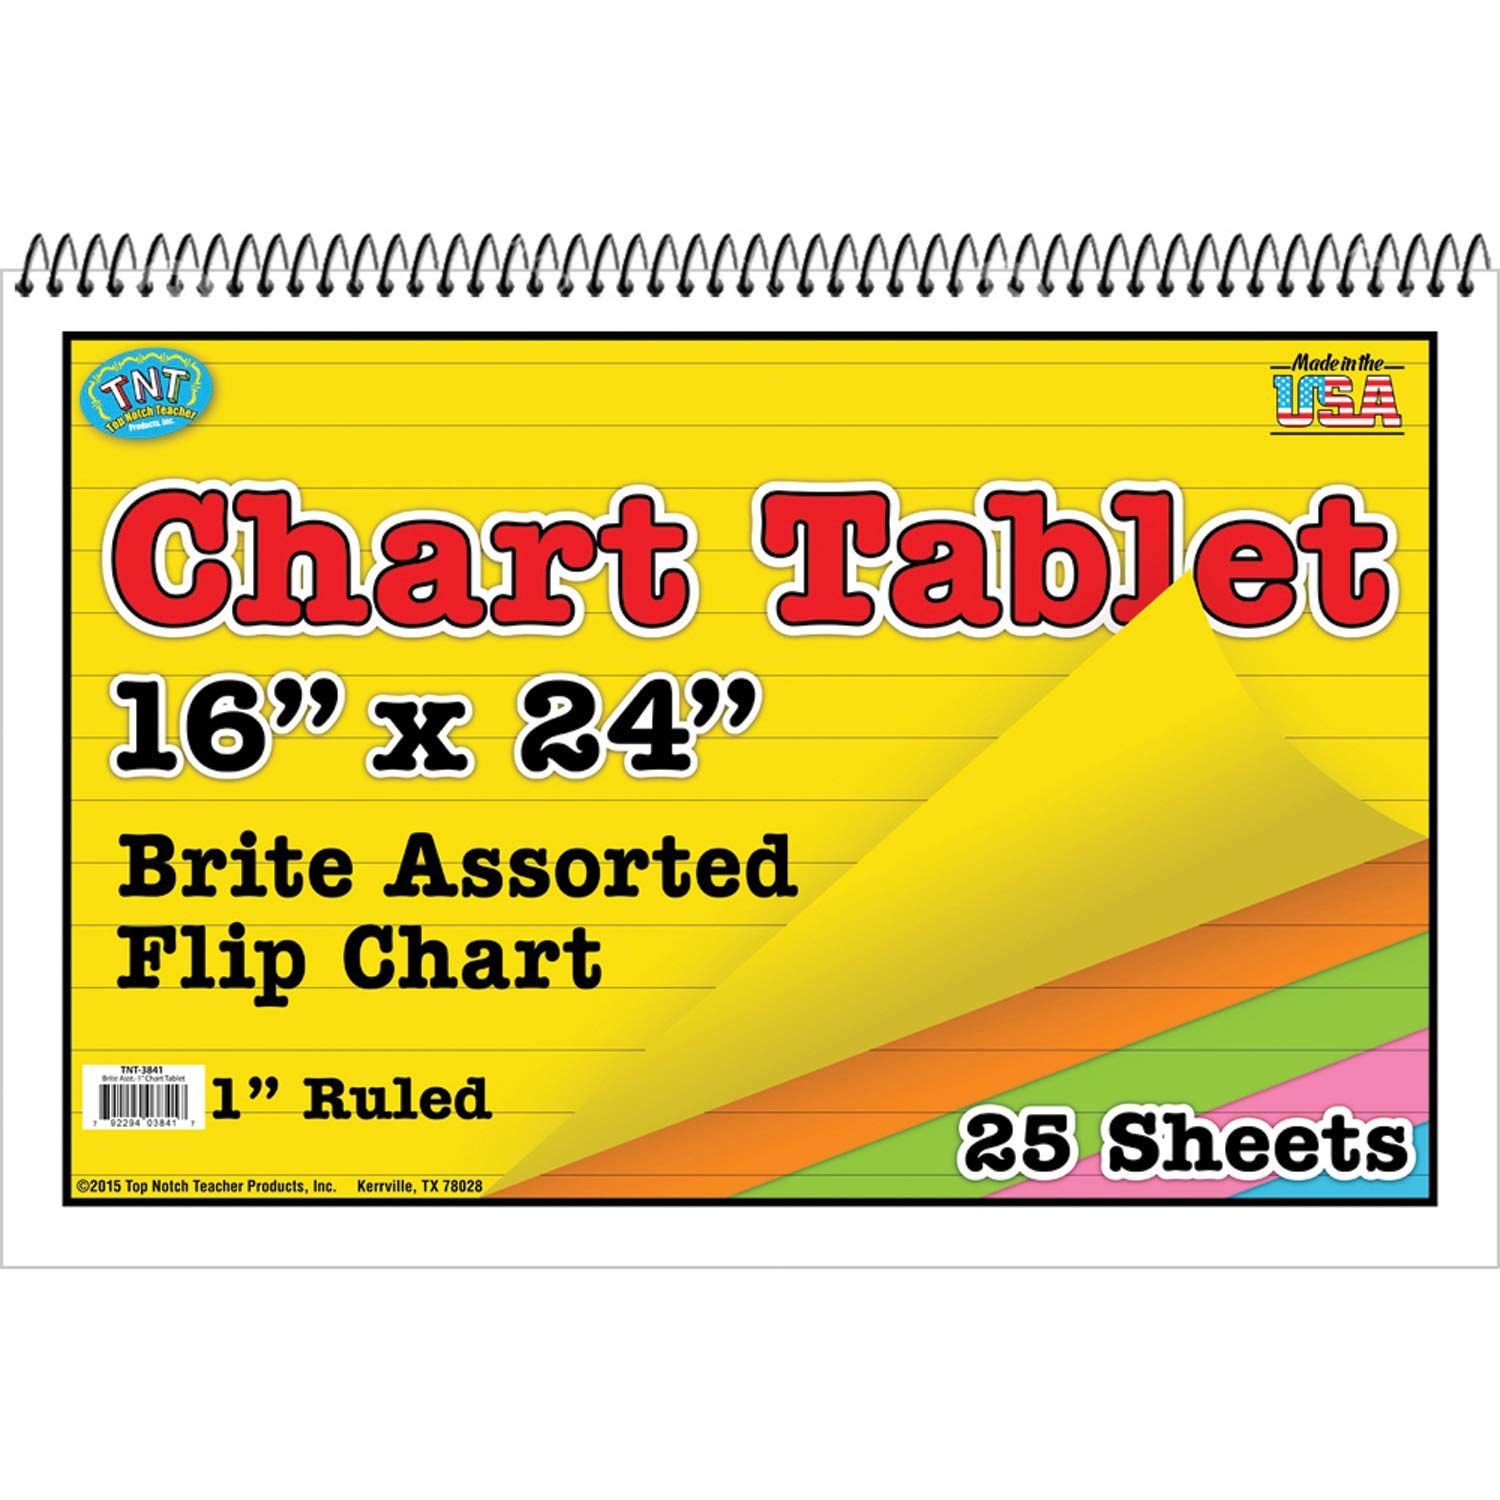 Top Notch Teacher Products TOP3841BN Brite Chart Tablet, 16'' x 24'', 1'' Ruled, Brite Colors, 25 Sheets, Pack of 3, Brite Assorted by Top Notch Teacher Products